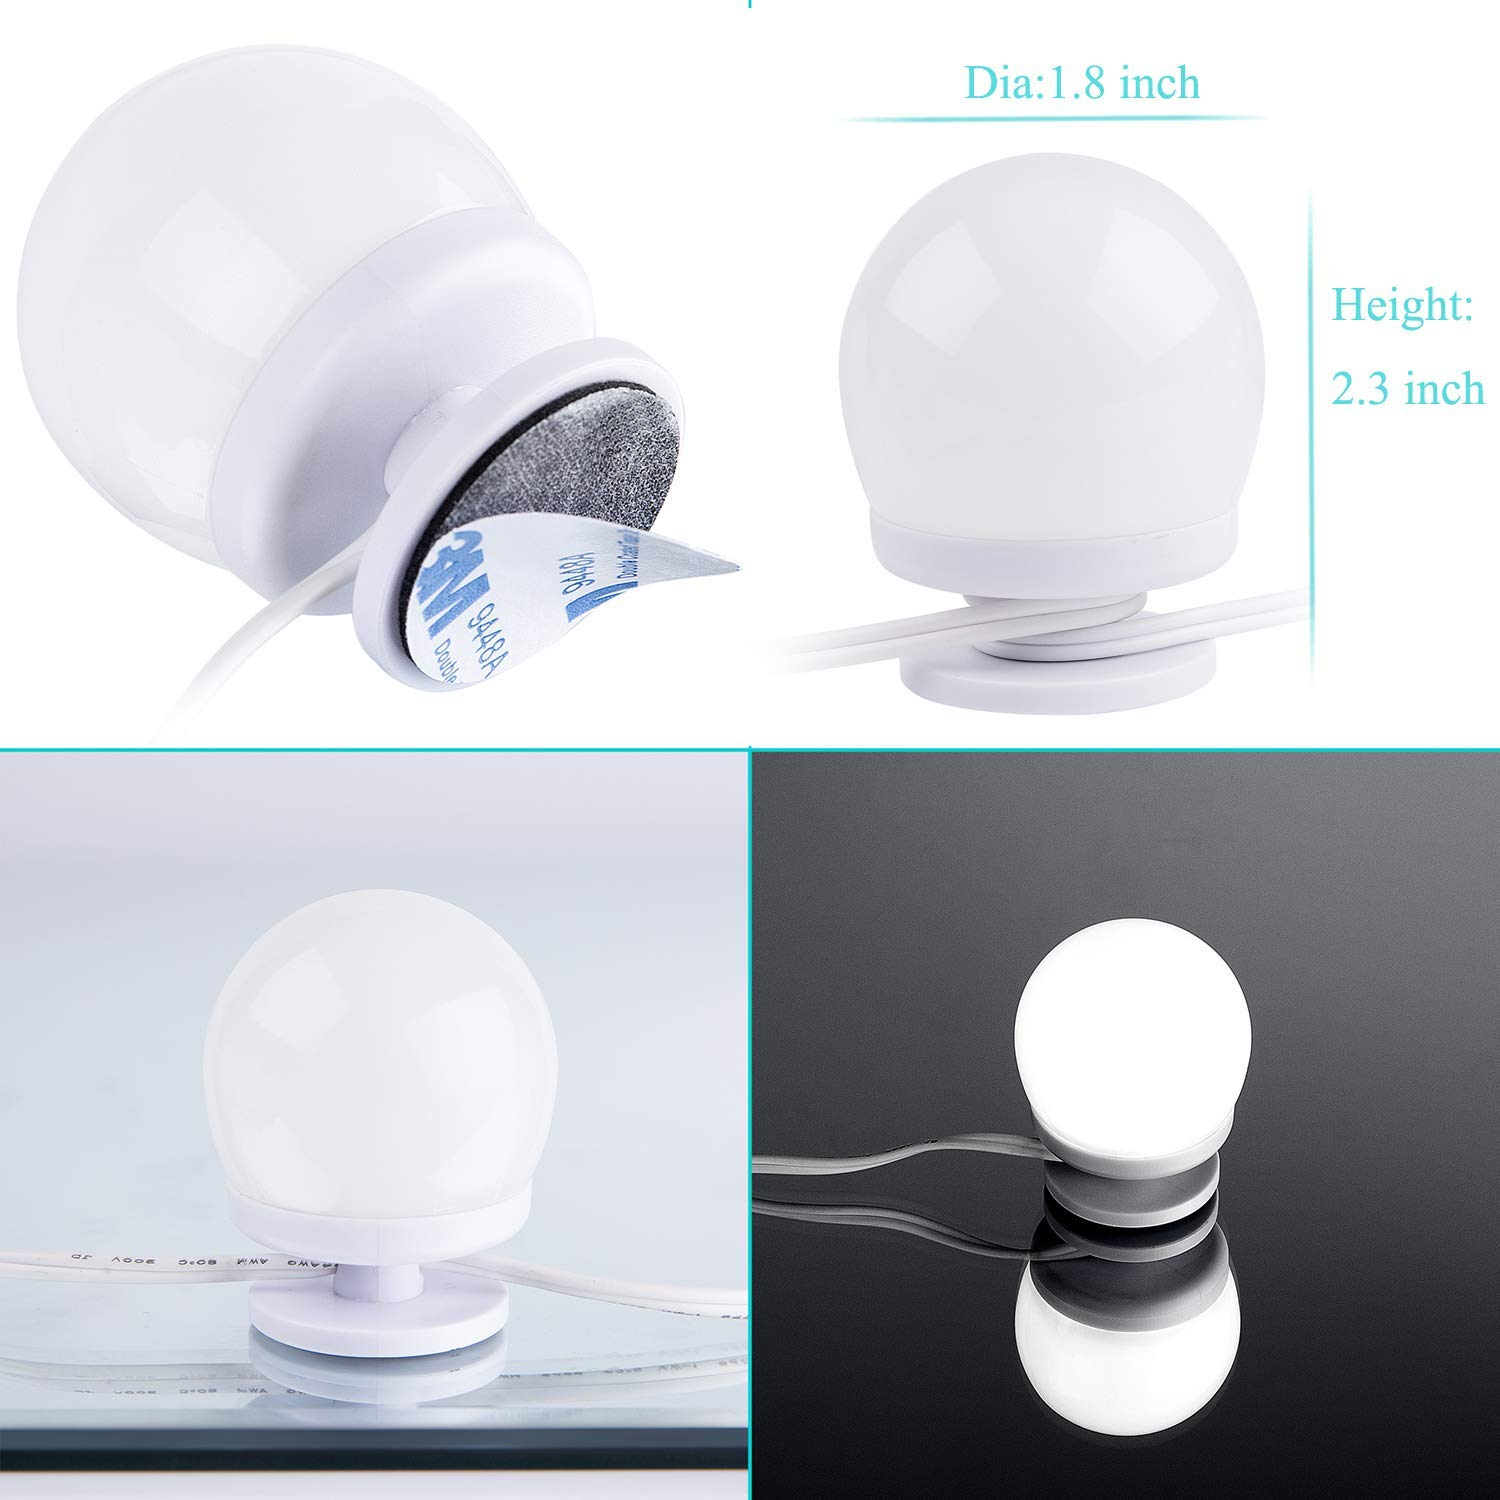 AIBOO Hollywood Style Lighted Vanity Makeup Mirror, LED Vanity Mirror Lights Kit for Dressing Table, Dimmable and Adapter Plug in, Mirror Not Included (16 Bulbs Natural White) by AIBOO (Image #4)